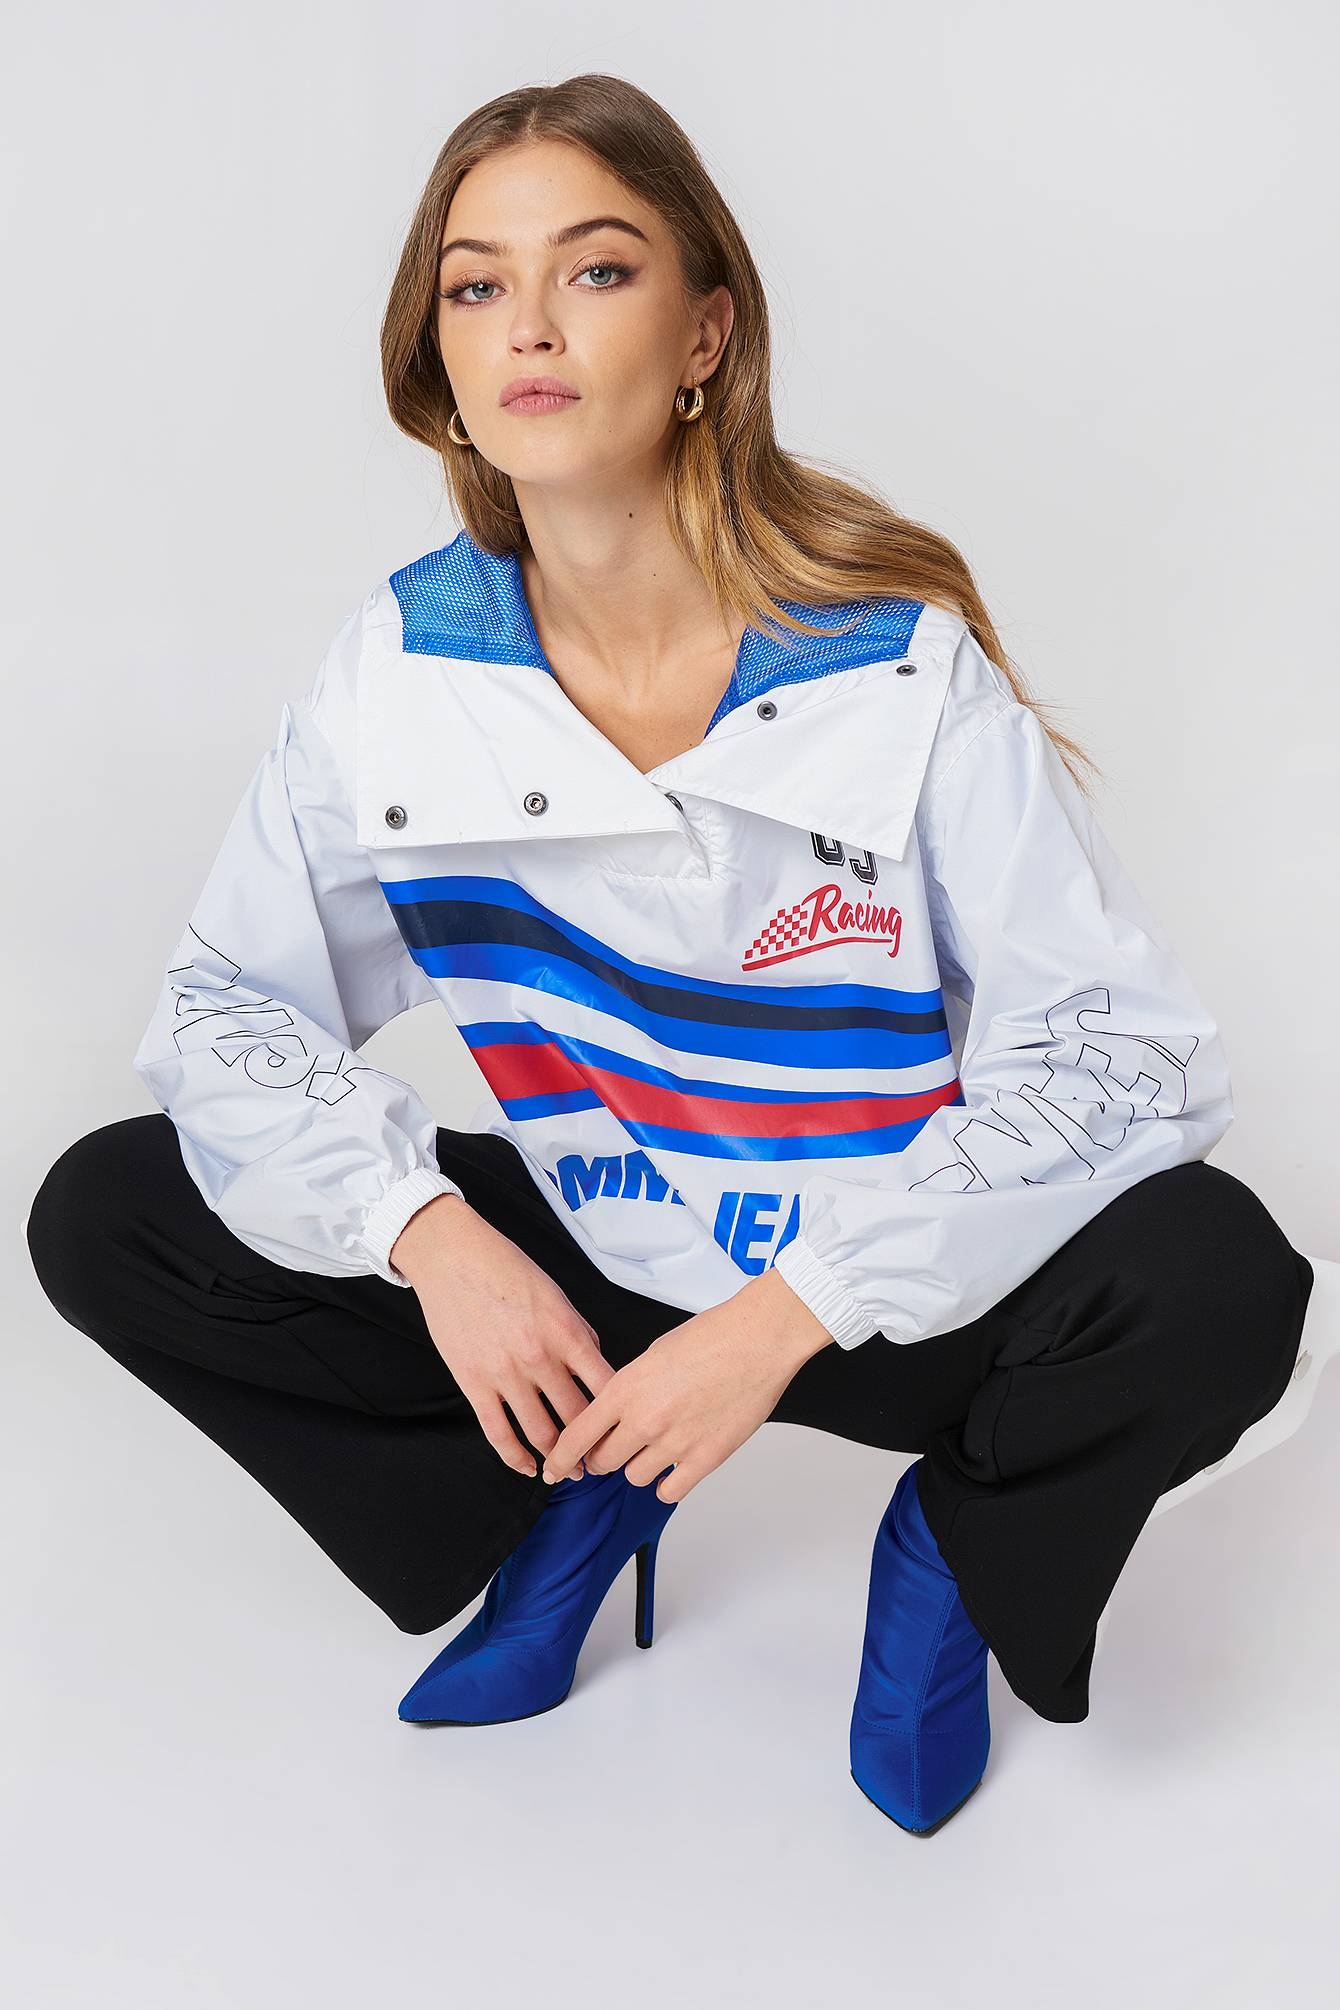 Tommy Hilfiger Racing Popover Jacket - White